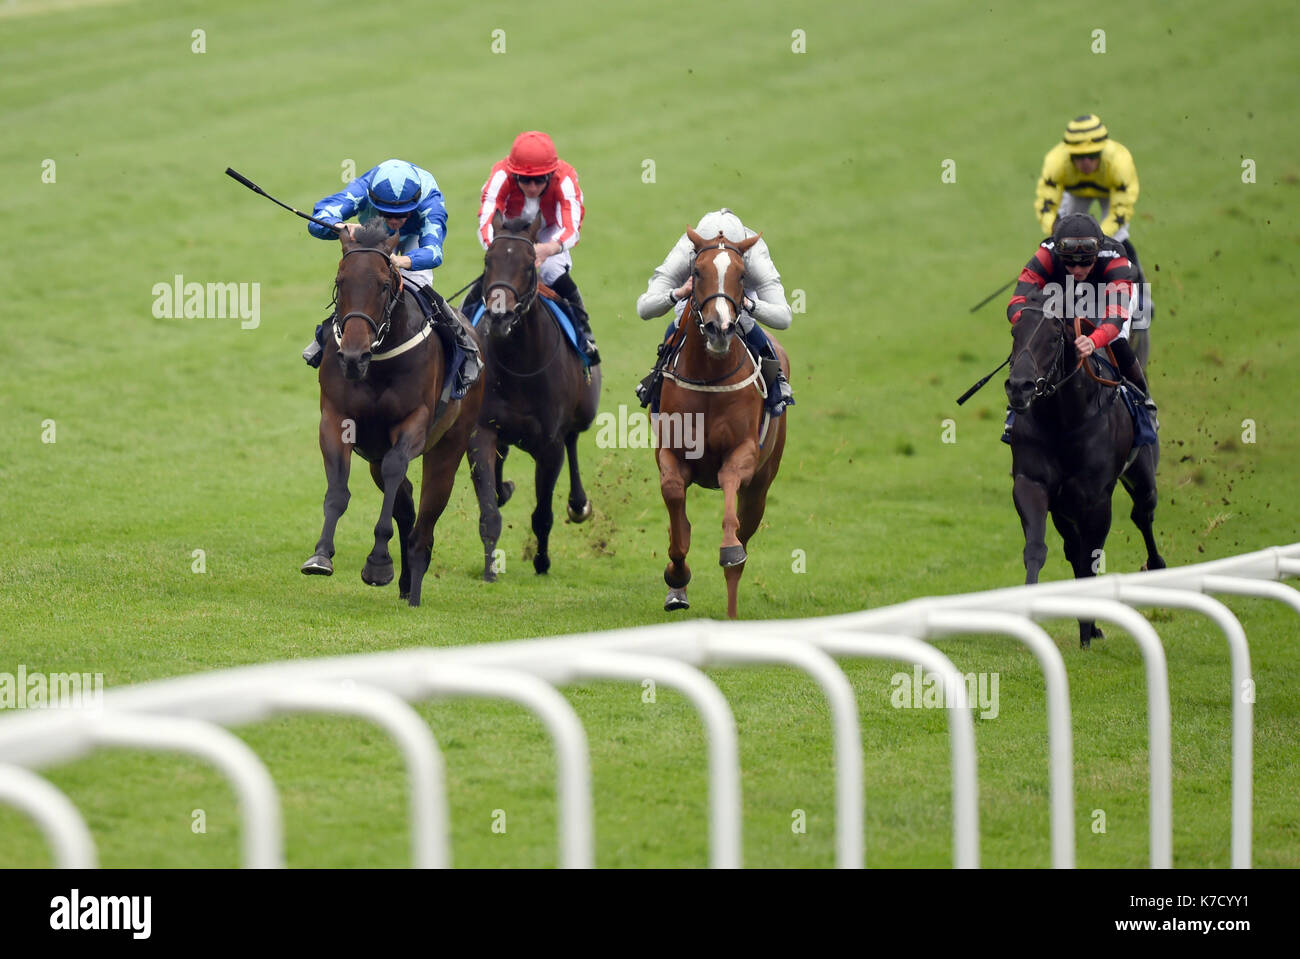 Photo Must Be Credited ©Alpha Press 079965 03/06/2016 Horse Racing at Ladies Day during The Investec Derby Festival 2016 at Epsom Downs Racecourse in Epsom, Surrey. - Stock Image